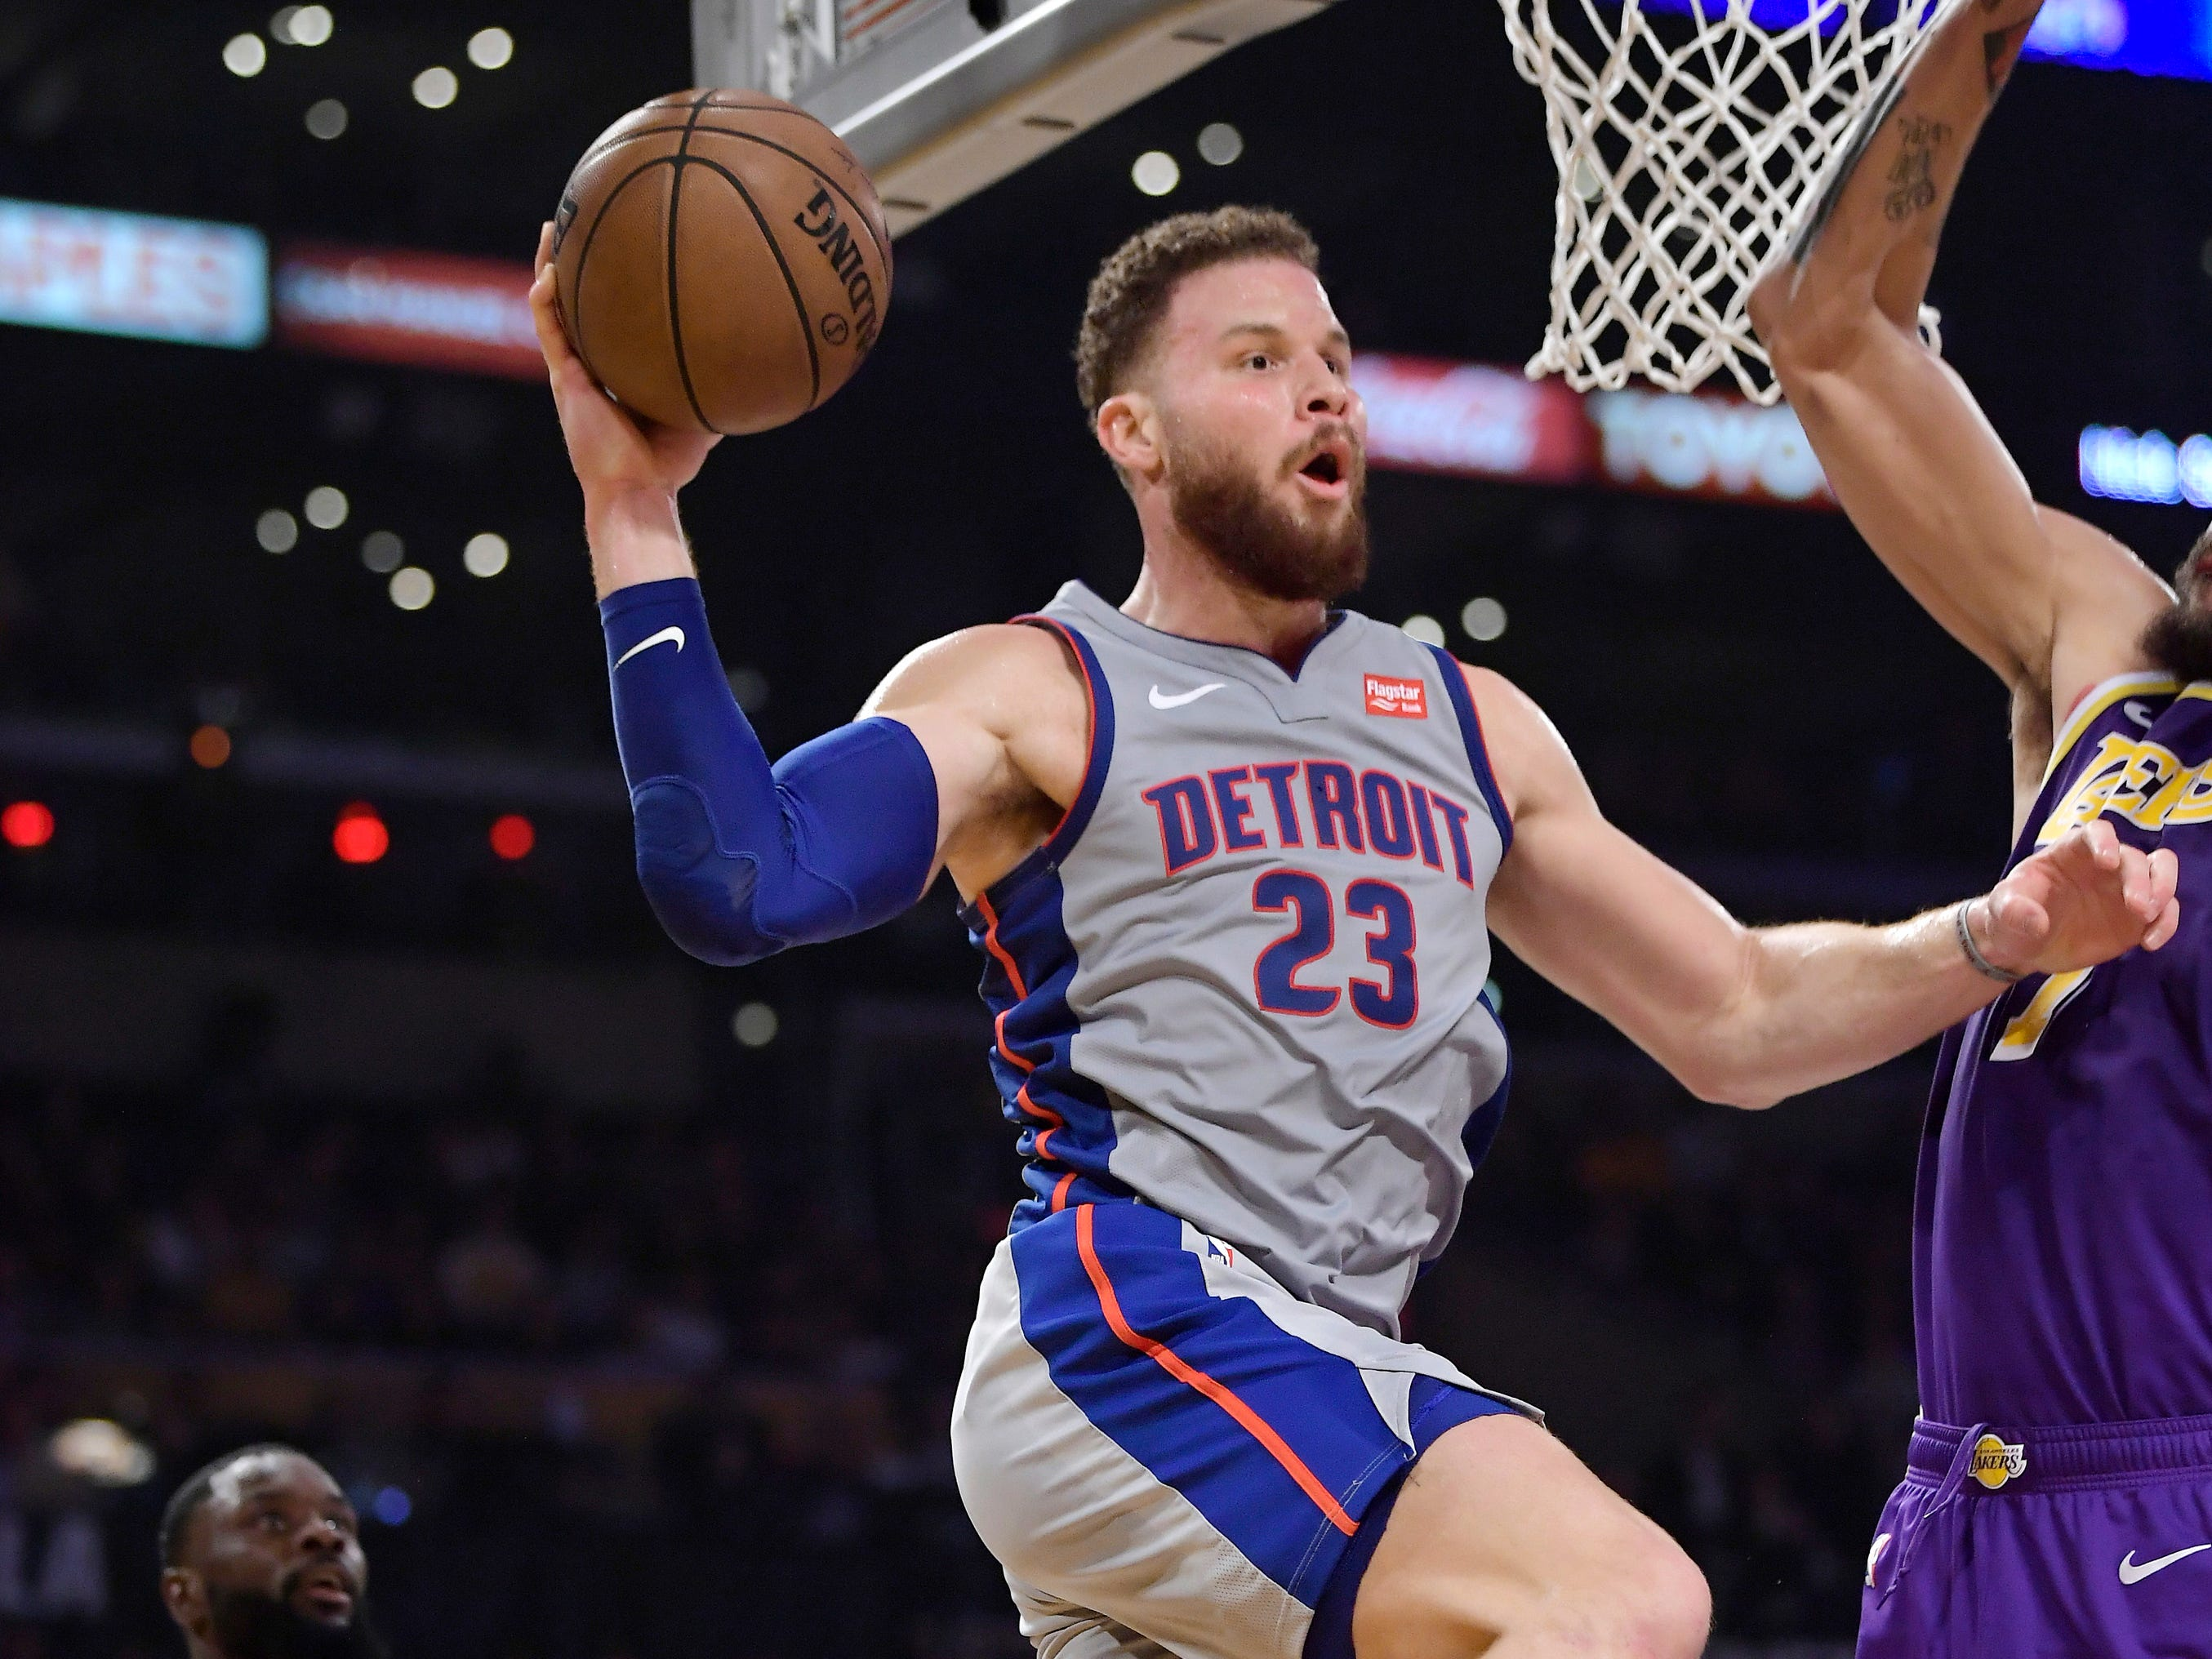 Detroit Pistons forward Blake Griffin looks to pass the ball as Los Angeles Lakers guard Lance Stephenson, left, defends during the first half.